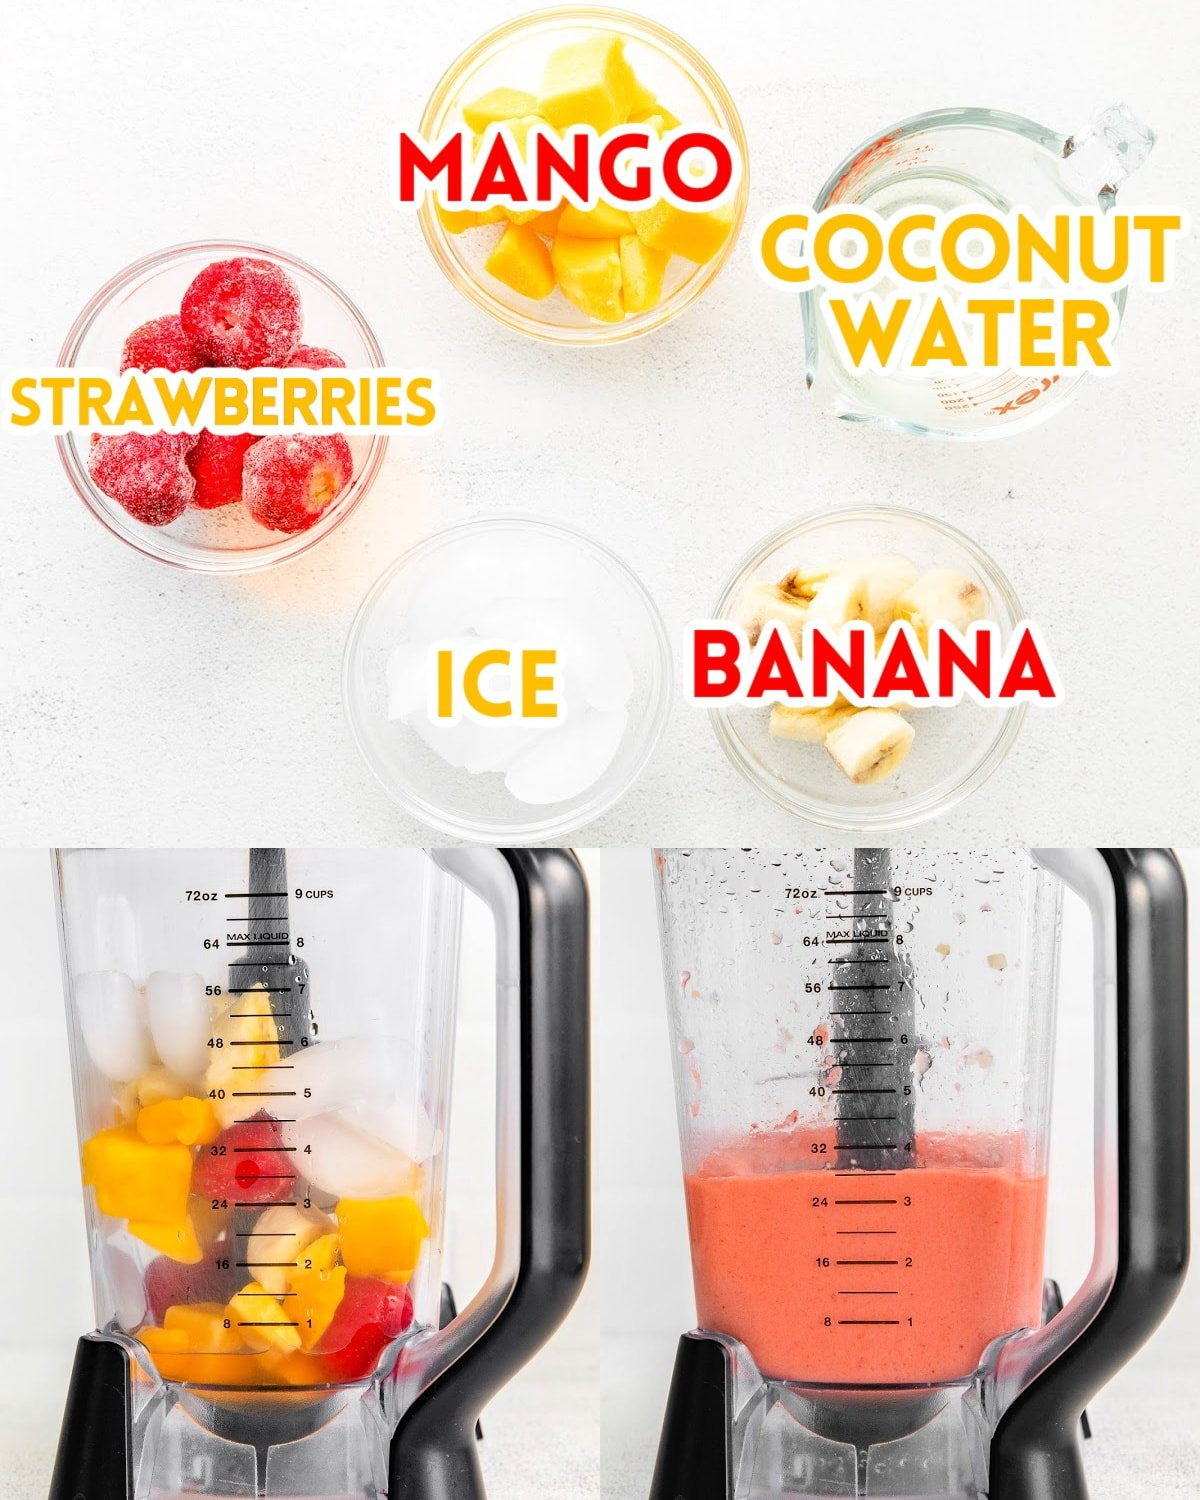 three image collage showing ingredients in small bowls and the smoothie being made in the blender.